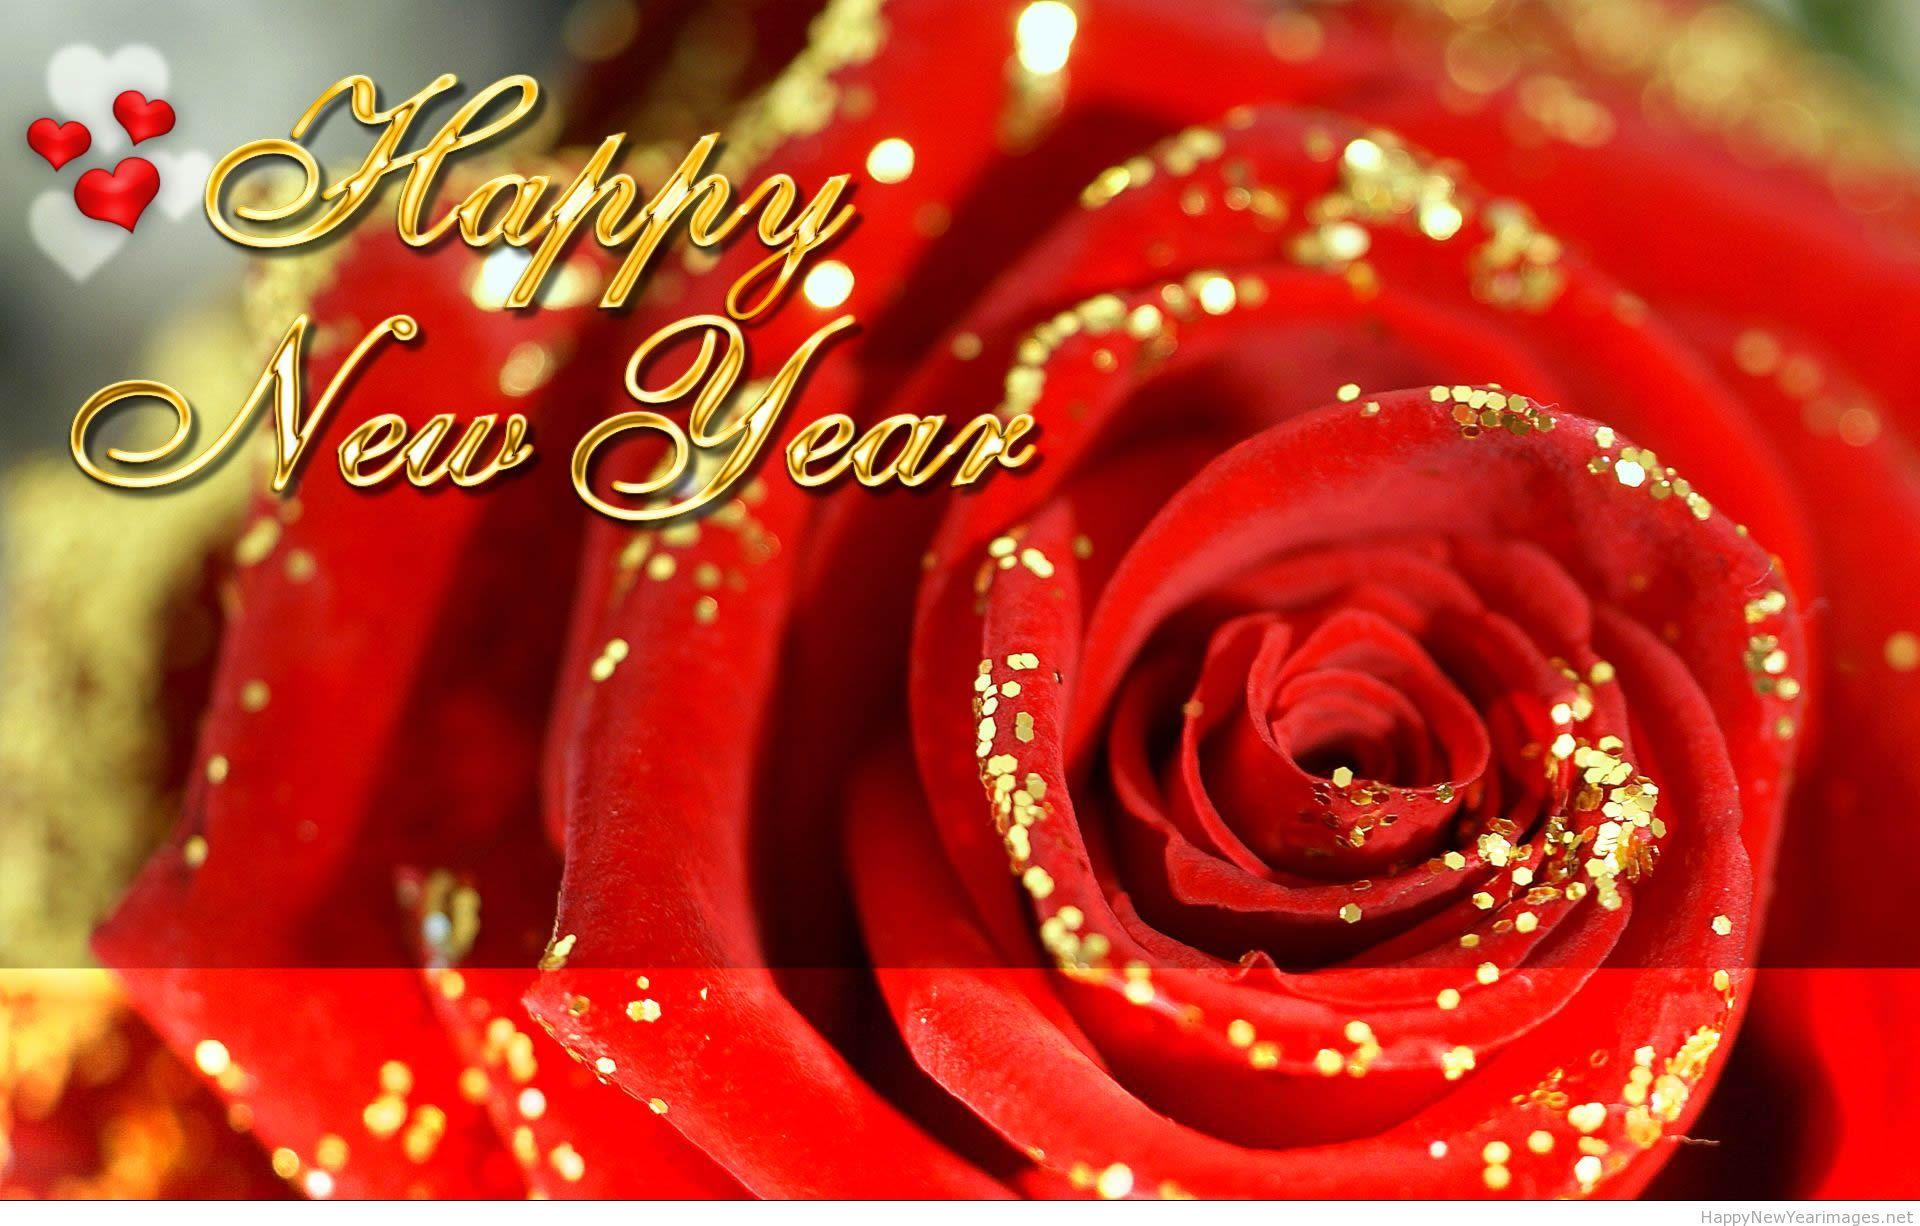 Happy new year rose wallpapers 2015